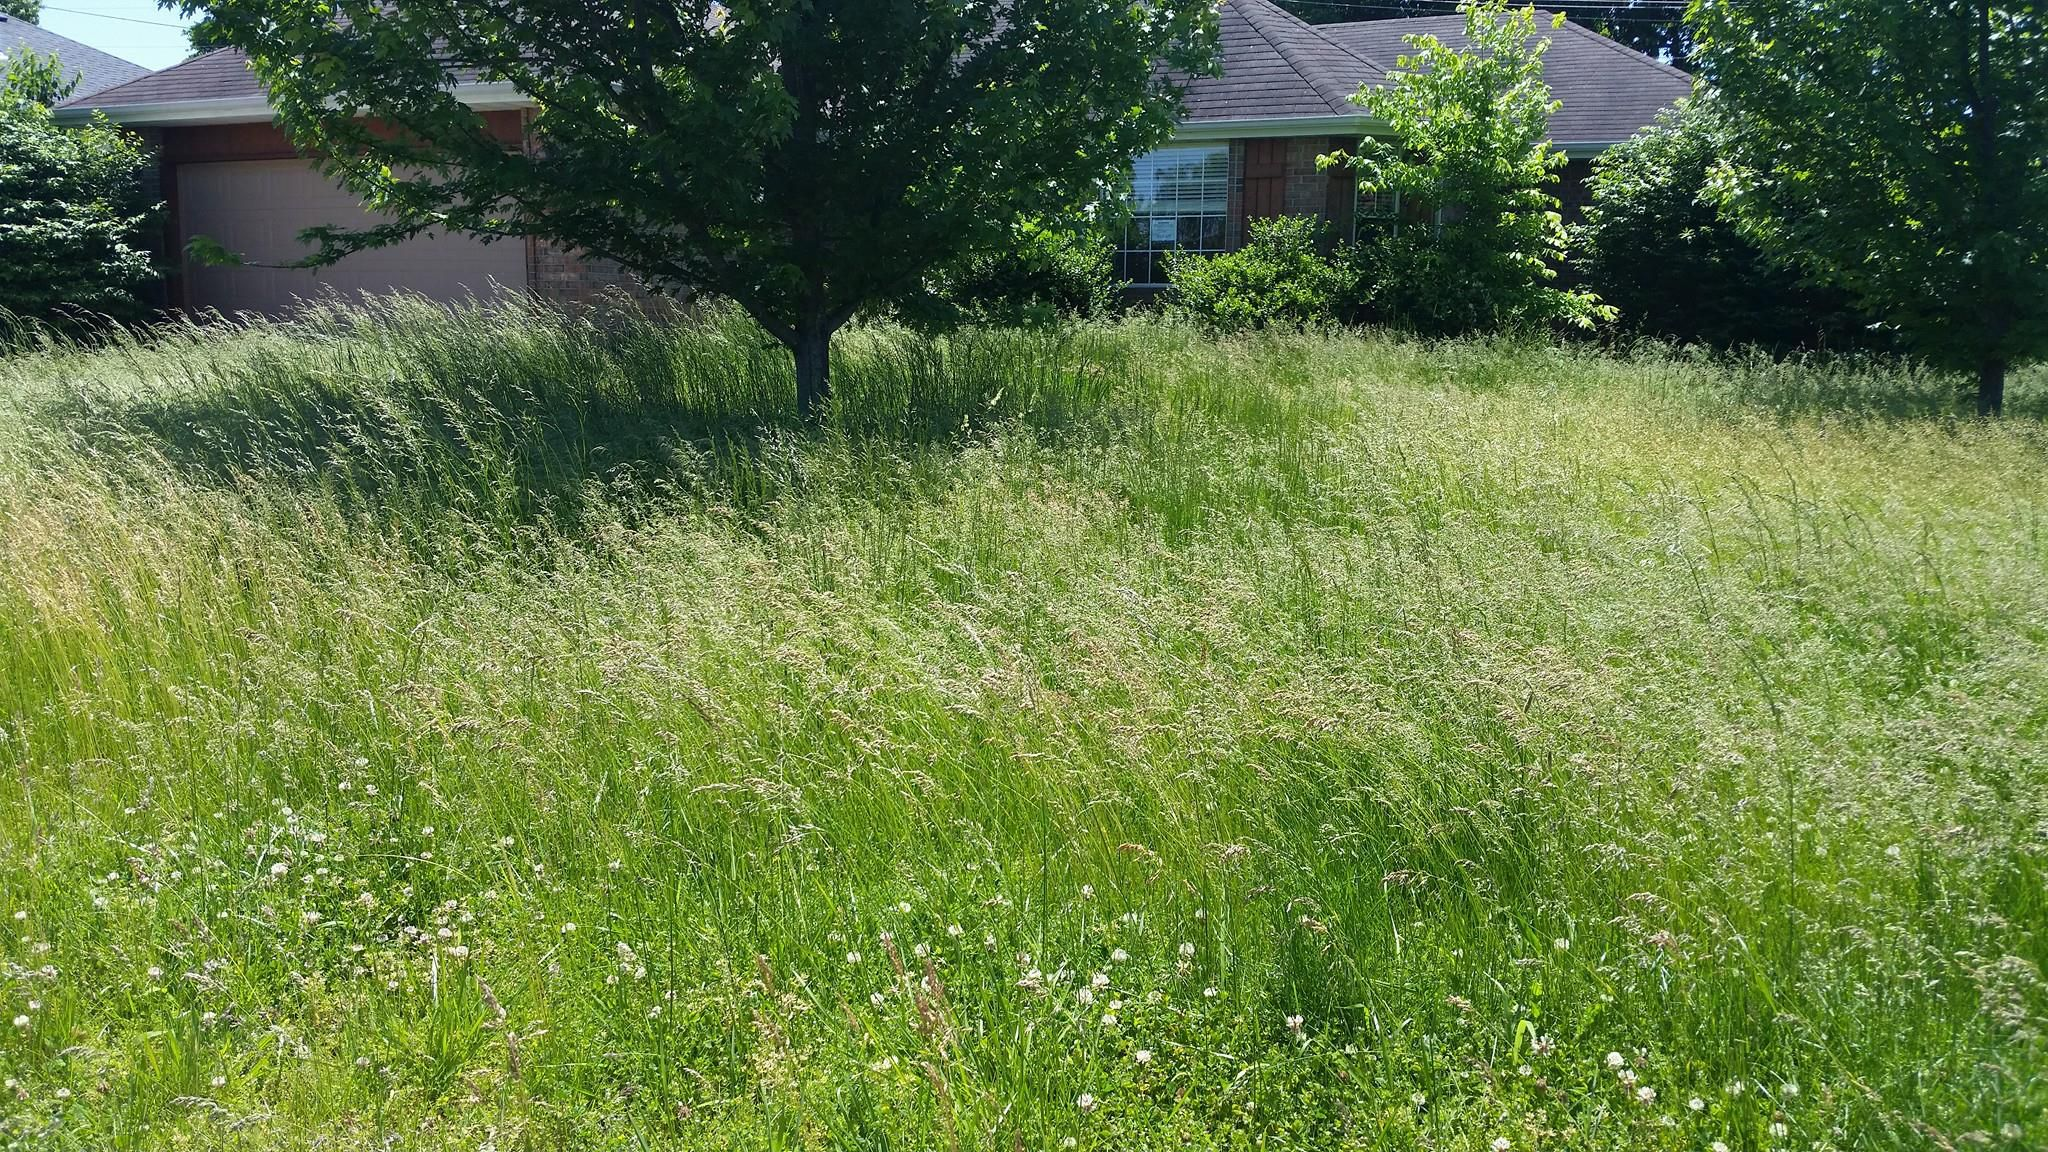 Here S What You Can Do About Your Neighbor S Tall Grass